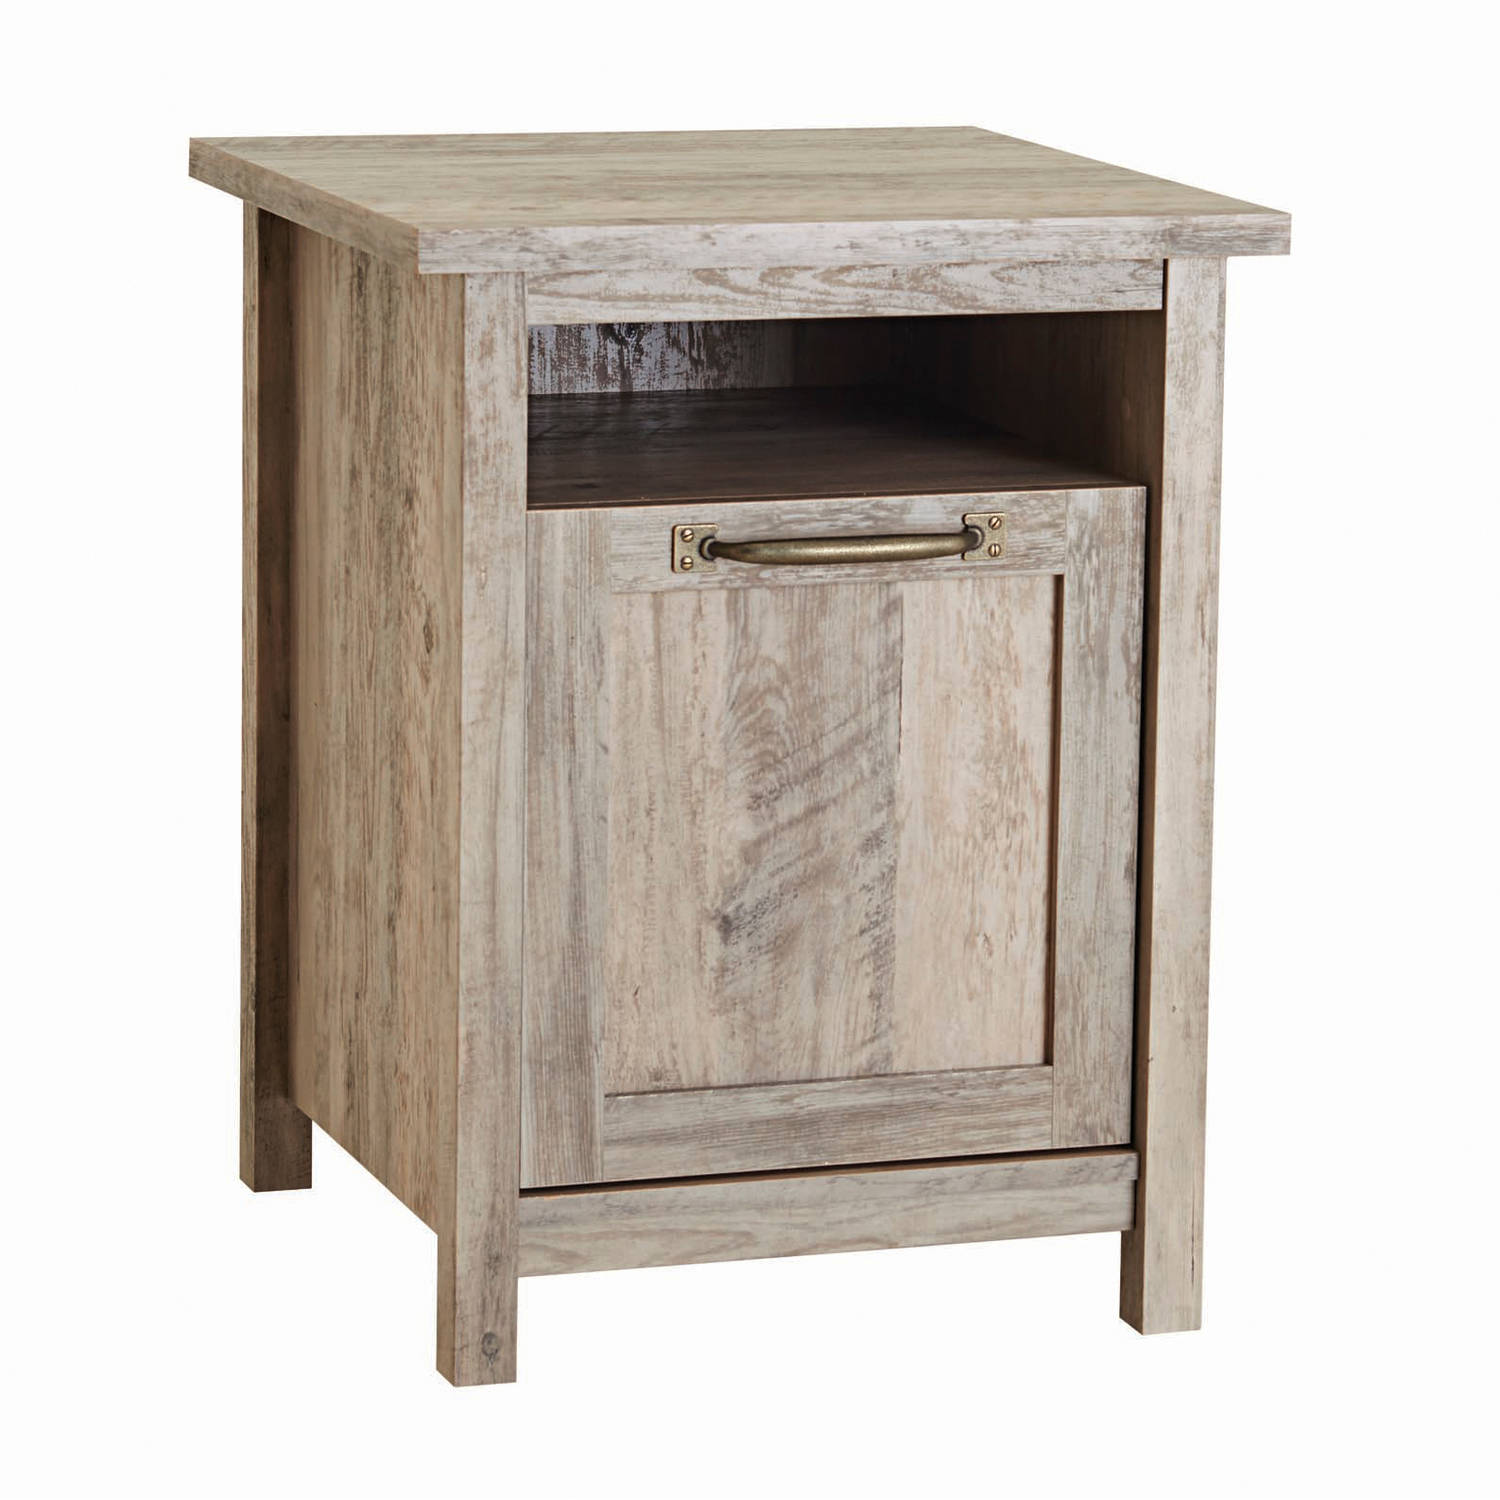 better homes gardens modern farmhouse side table rustic gray accent departments pub cloths wooden with drawer threshold yellow campaign entryway storage baskets inch high coffee